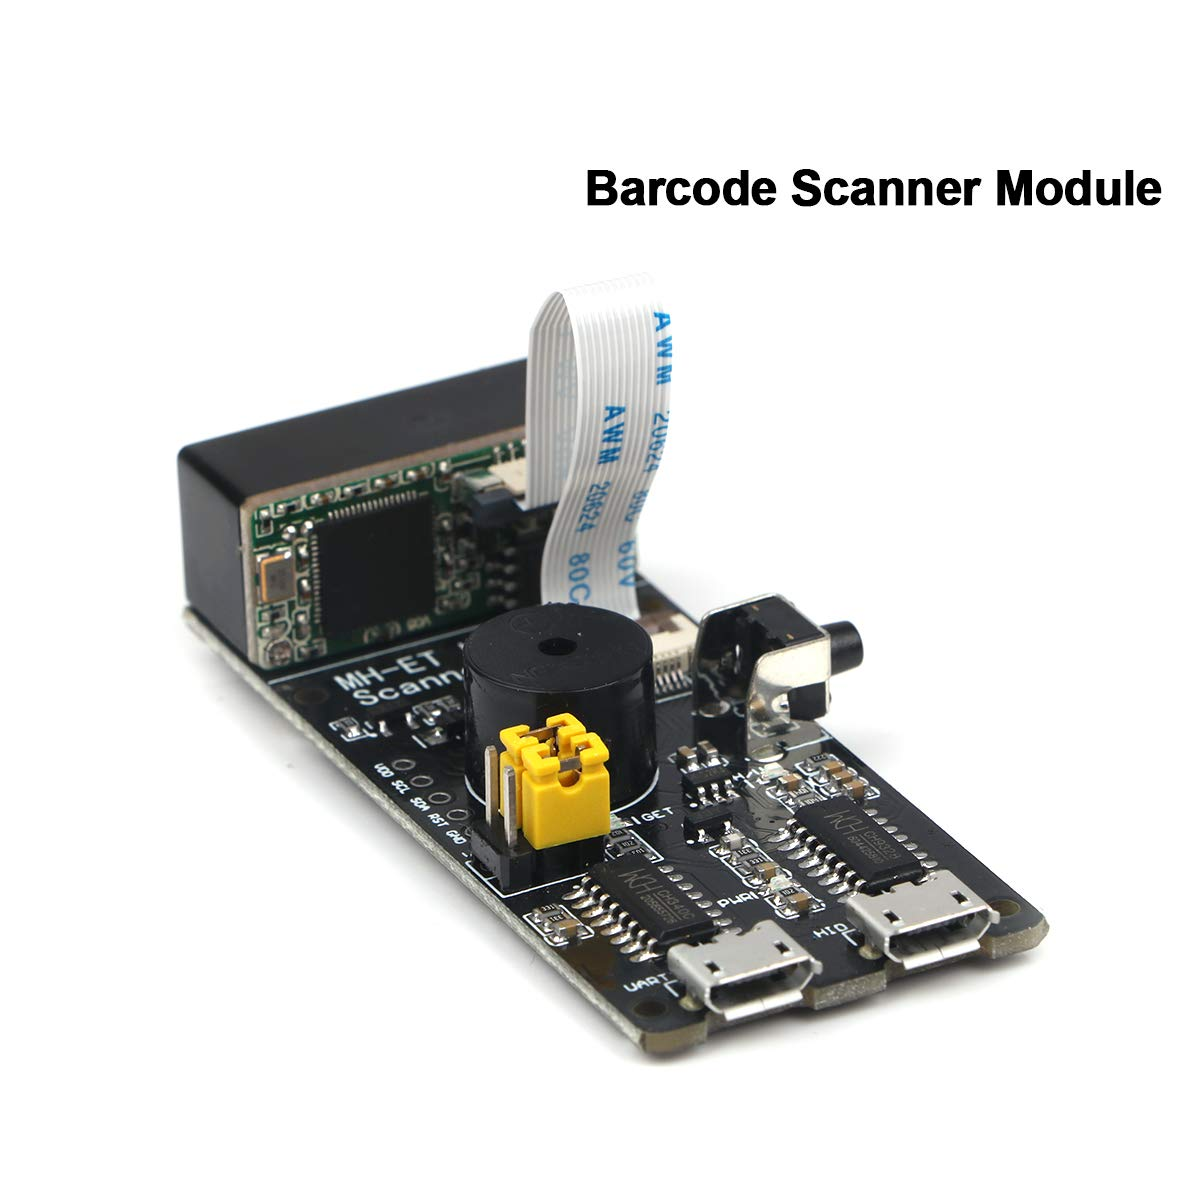 MakerHawk Barcode Scanner Module 1D/2D Codes Barcode, QR Code Scanner Module V3.0 Serial Embedded Two-Dimensional Scanning Engine Barcode Scan Recognition Module